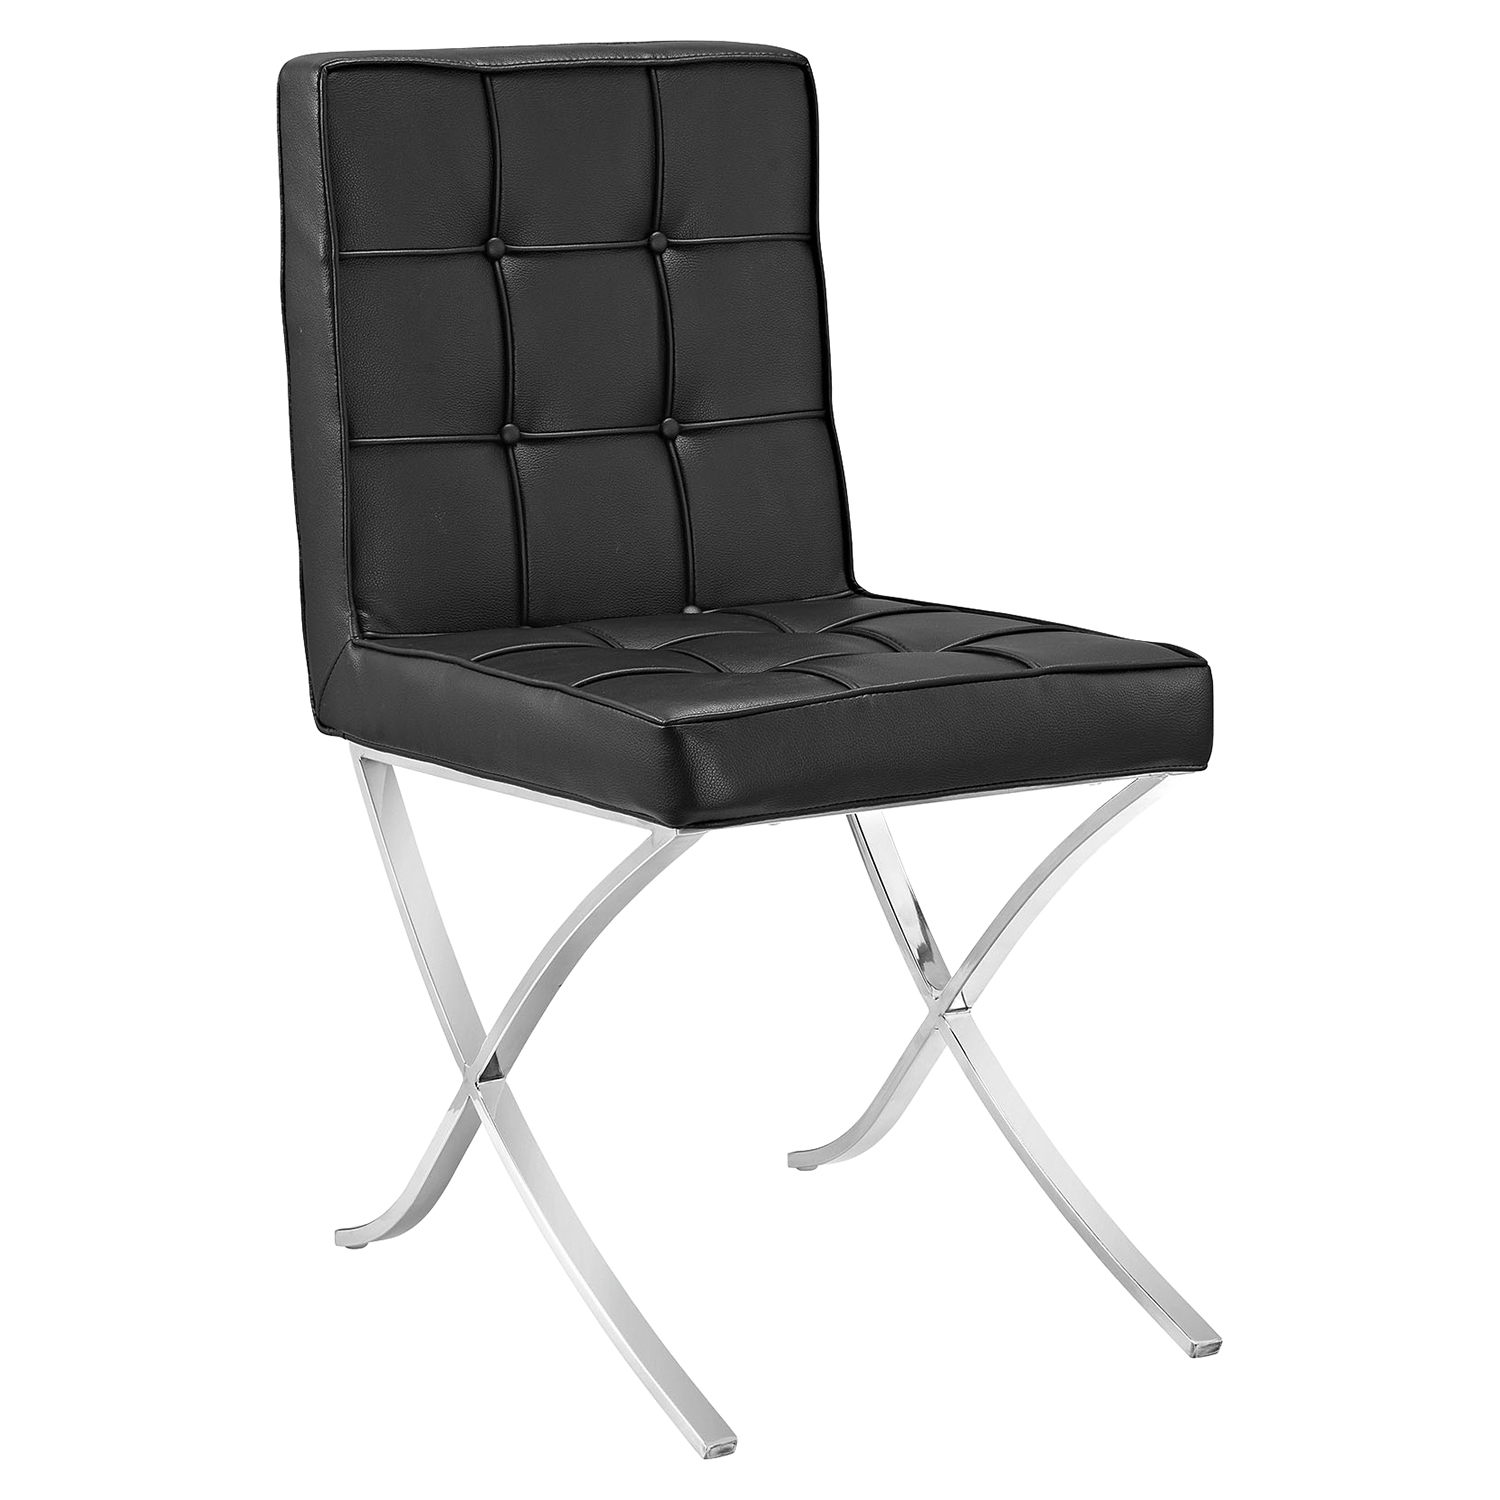 Trieste Memory Foam Dining Chair - Button Tufted, Black